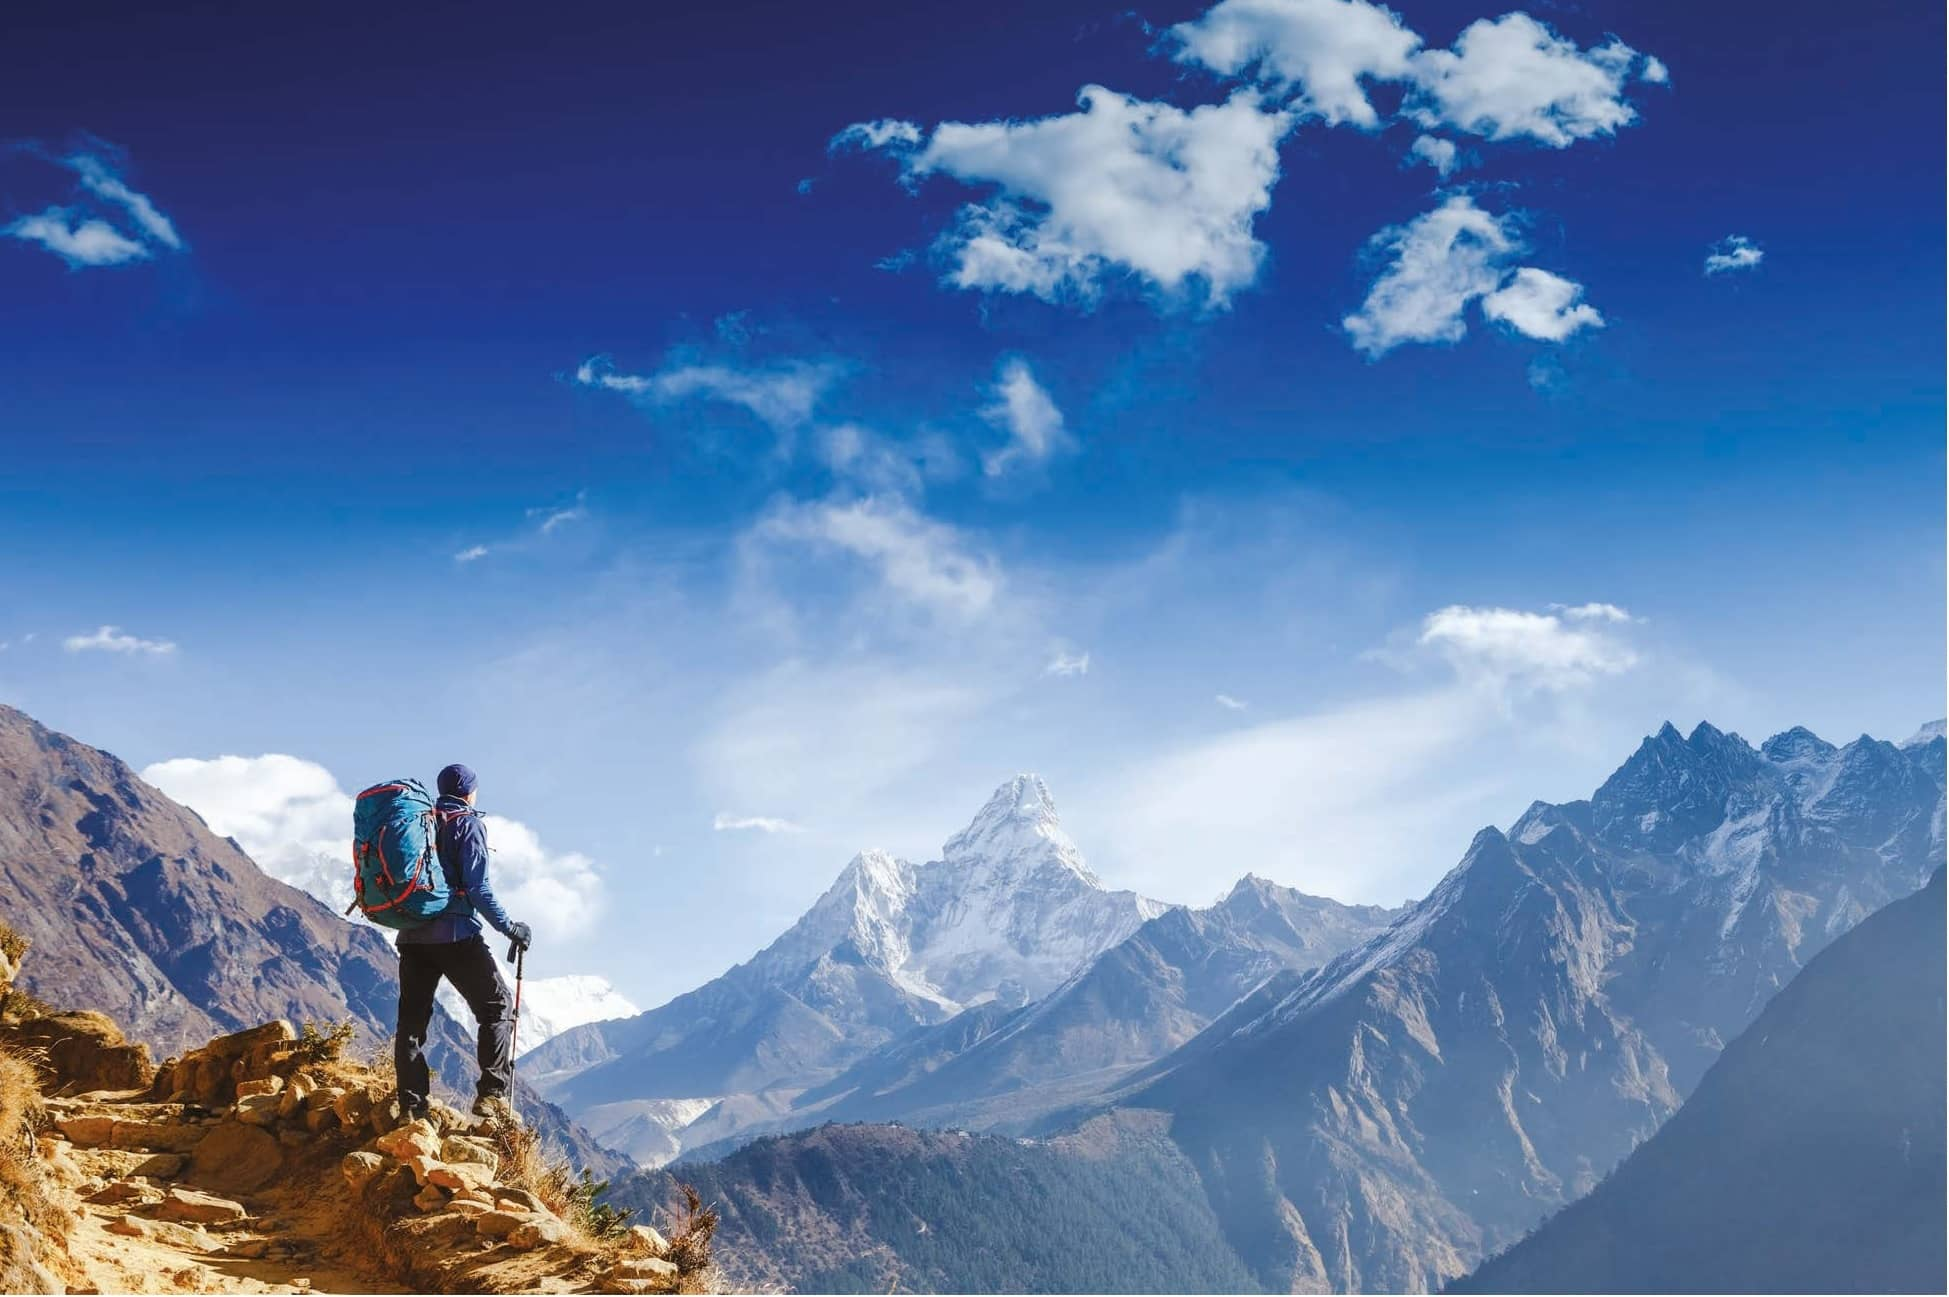 HIKING HOLIDAYS TO BOOST MENTAL HEALTH